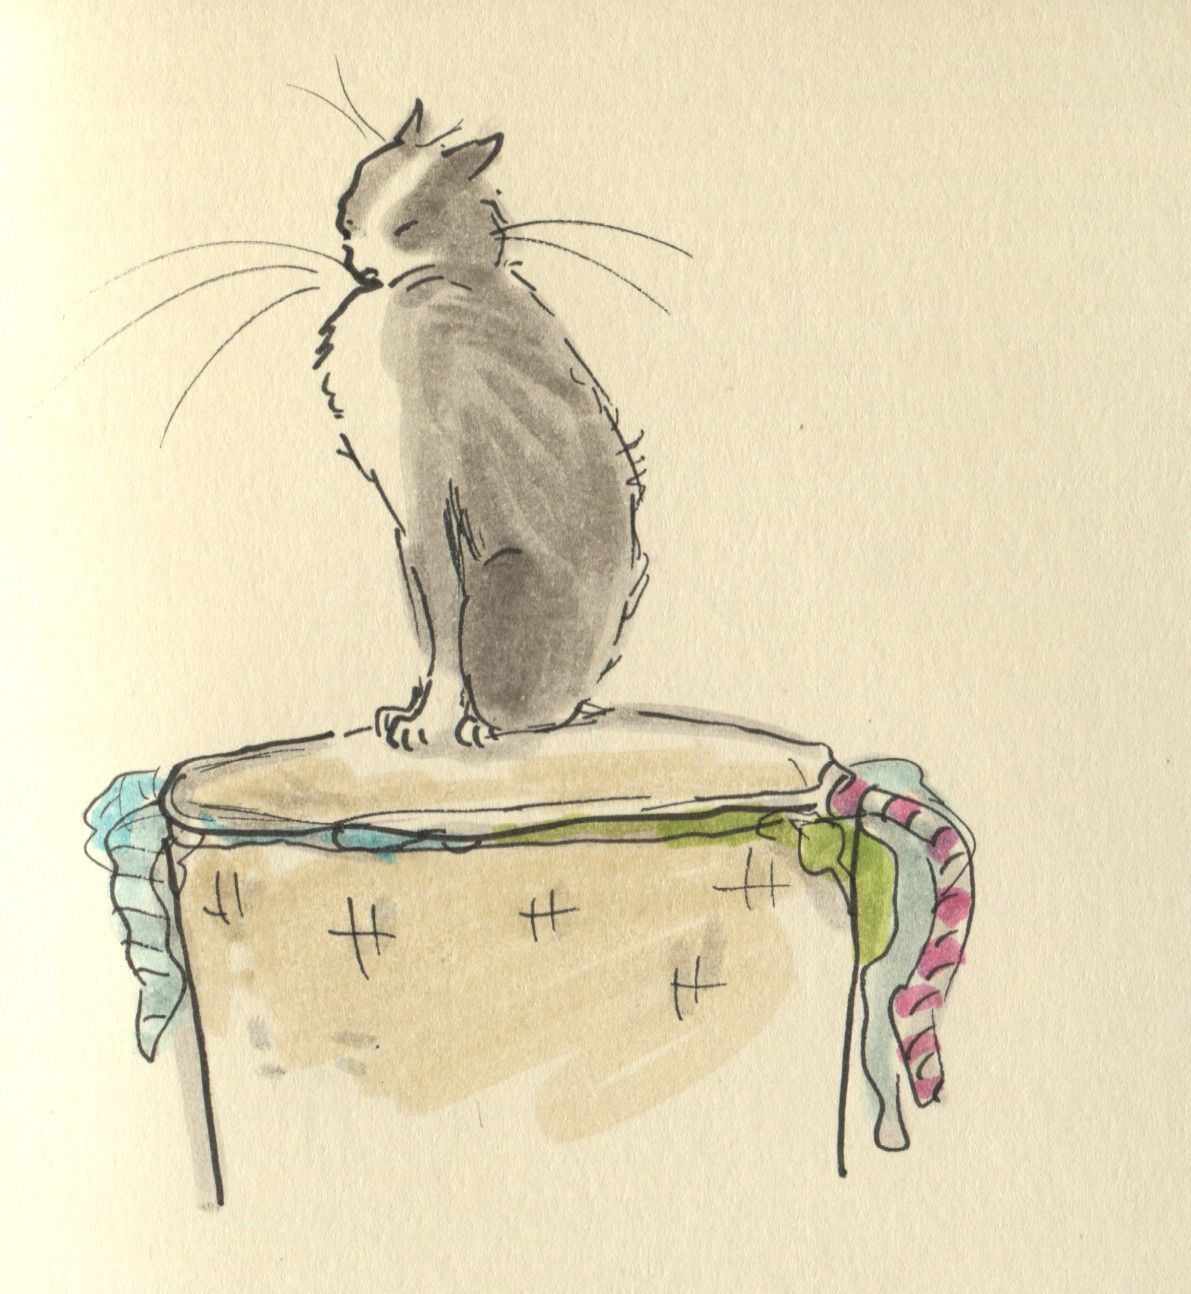 Out of order: Can't do any washing, the cat told me to have the day off…